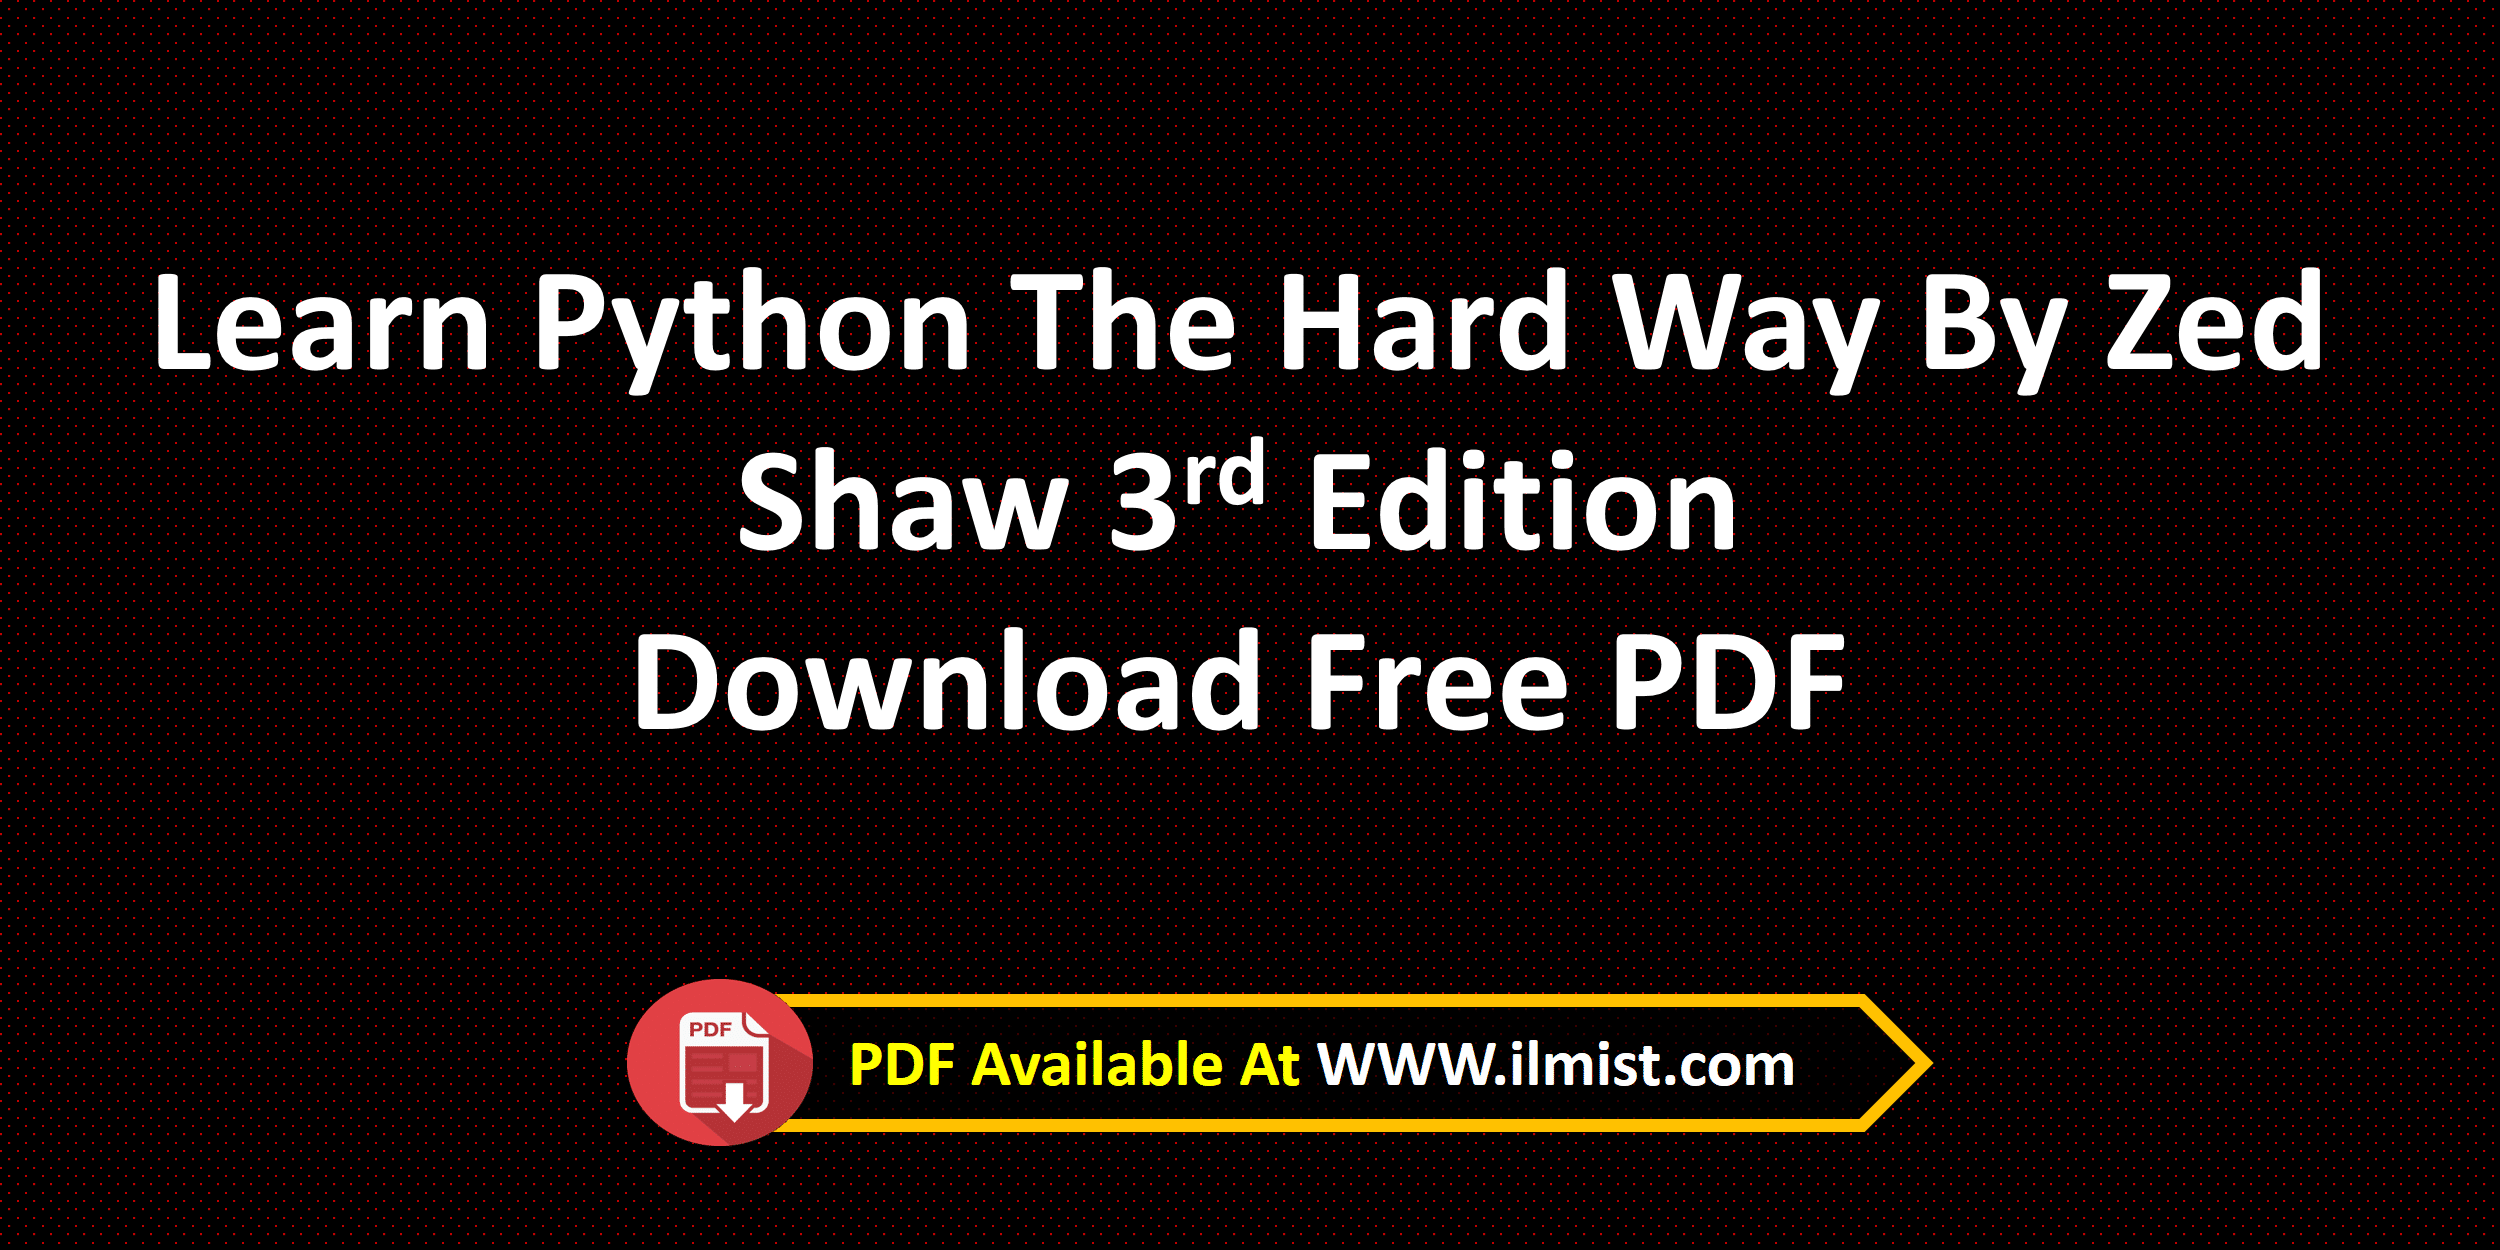 Learn Python The Hardway By Zed Shaw Free PDF | ilmist